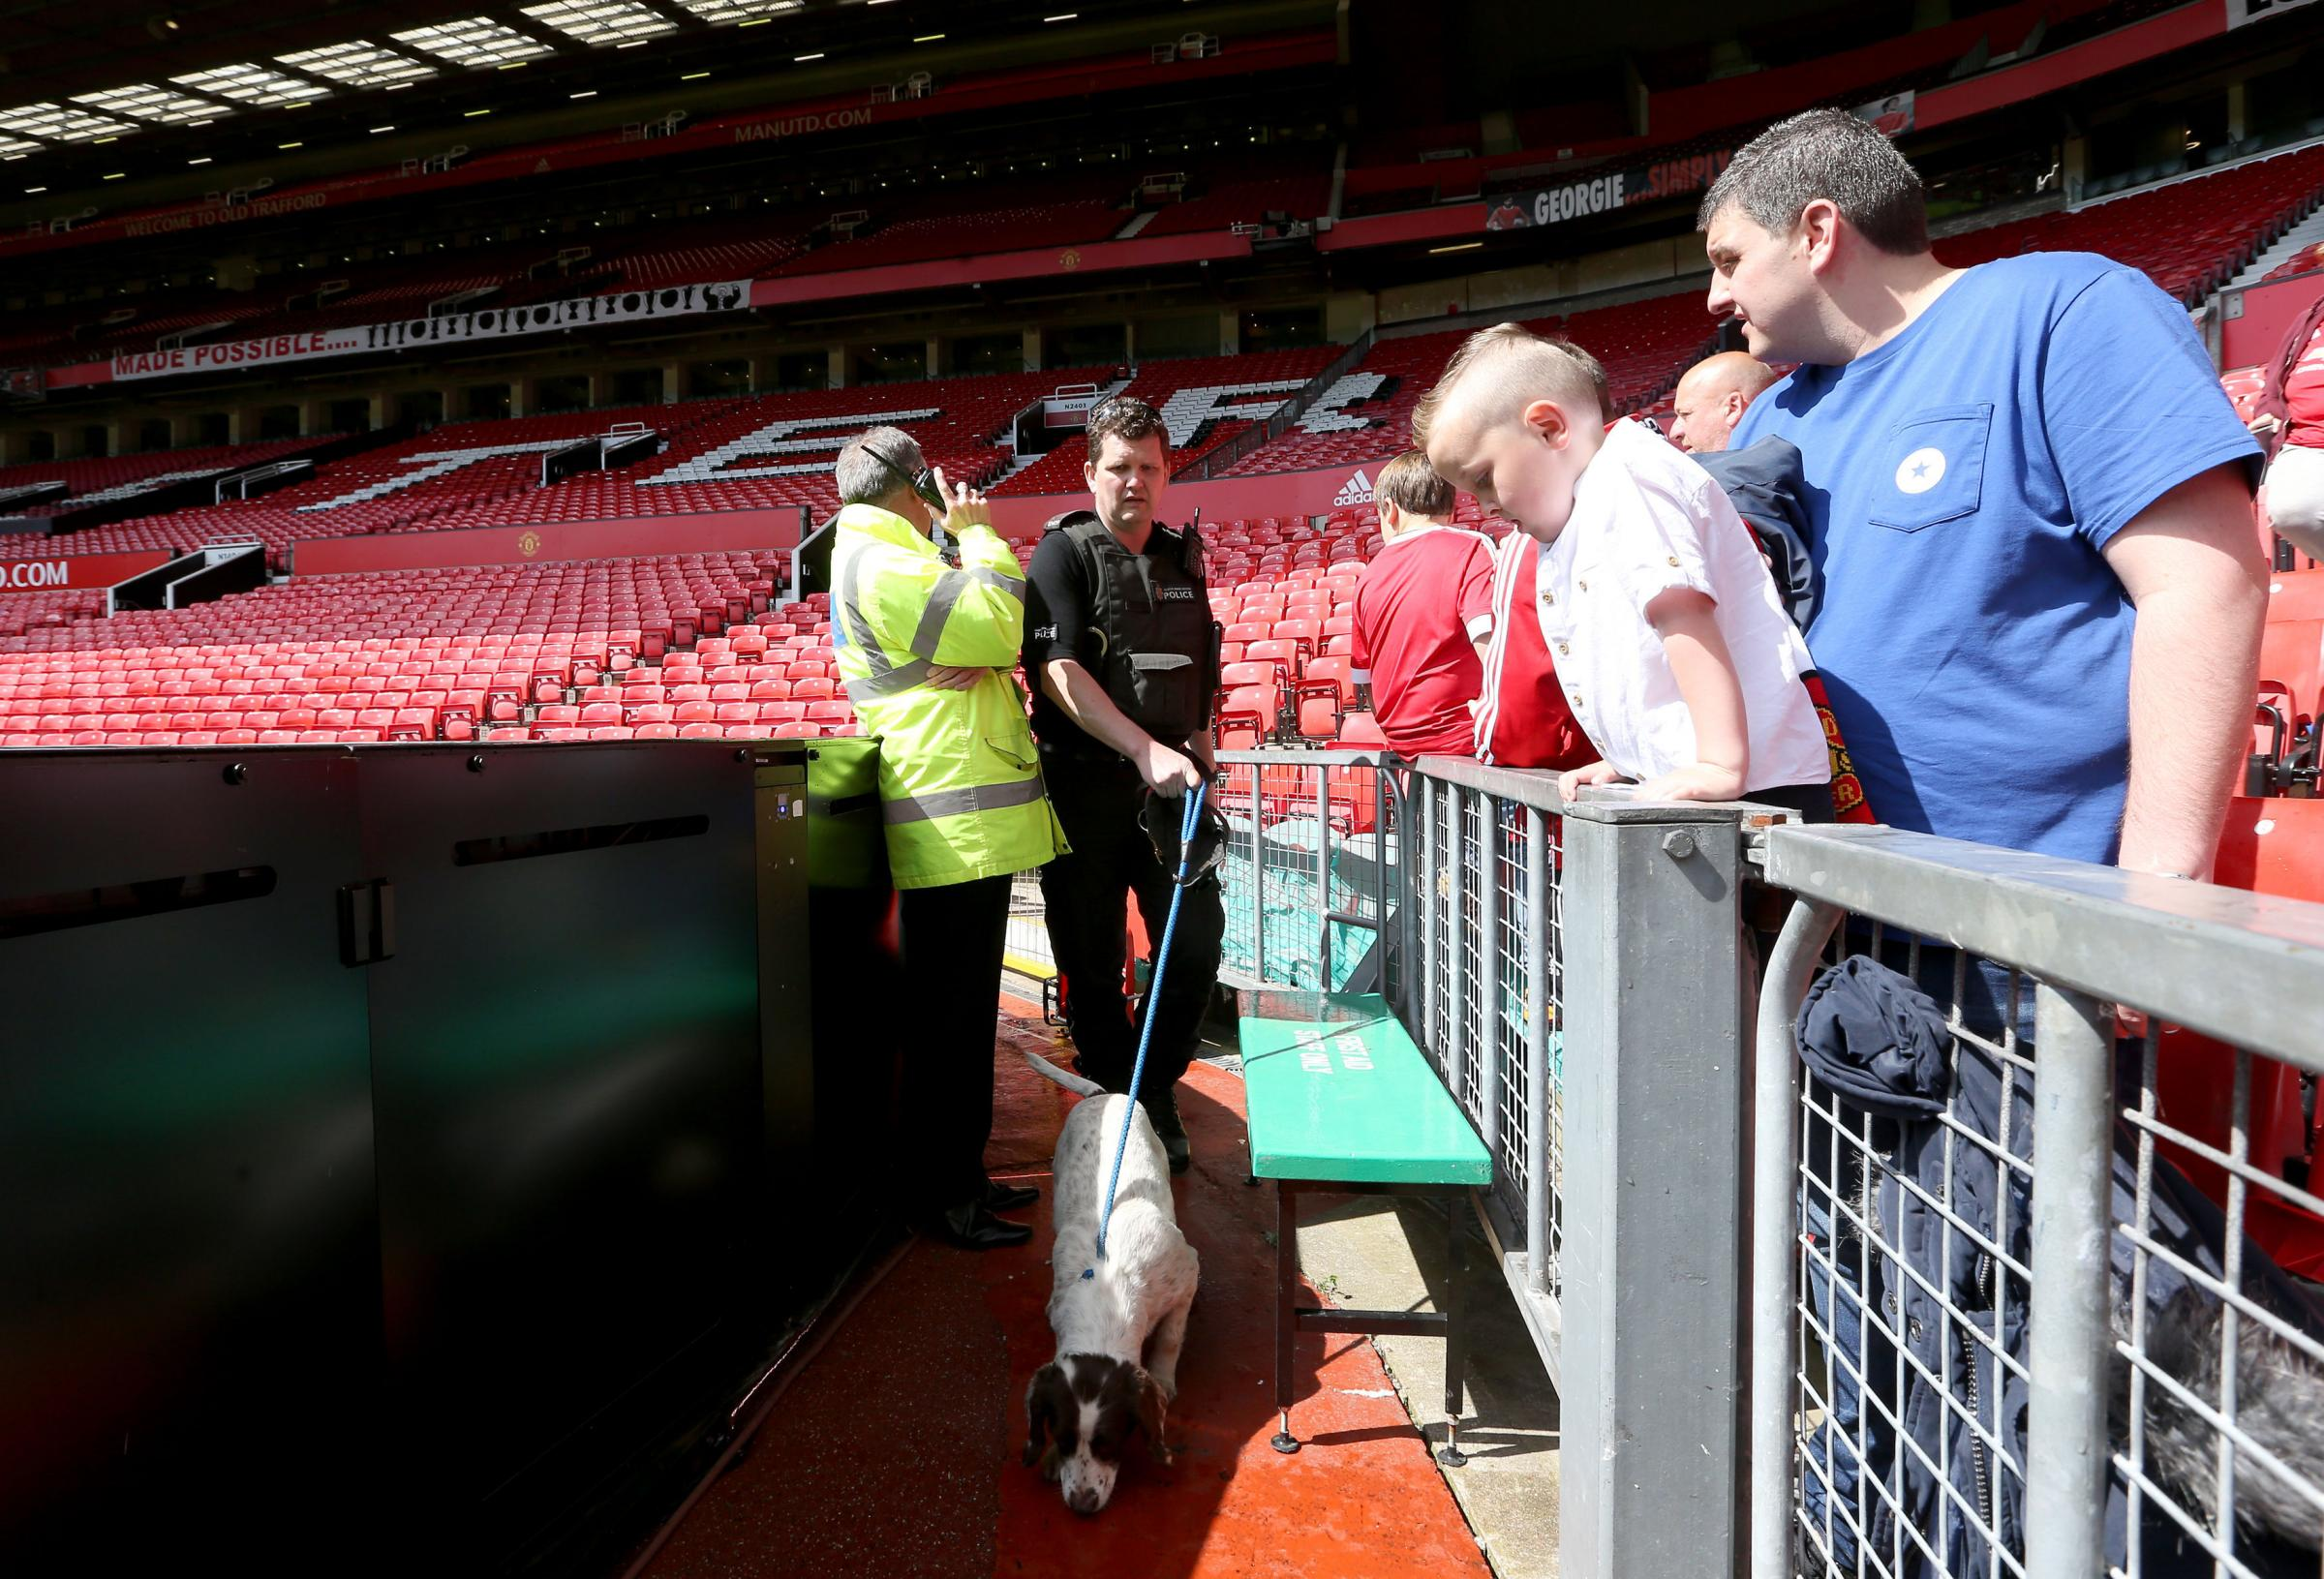 Thousands evacuated as Man Utd's game with Bournemouth is abandoned amid security concerns (From Herald Scotland)